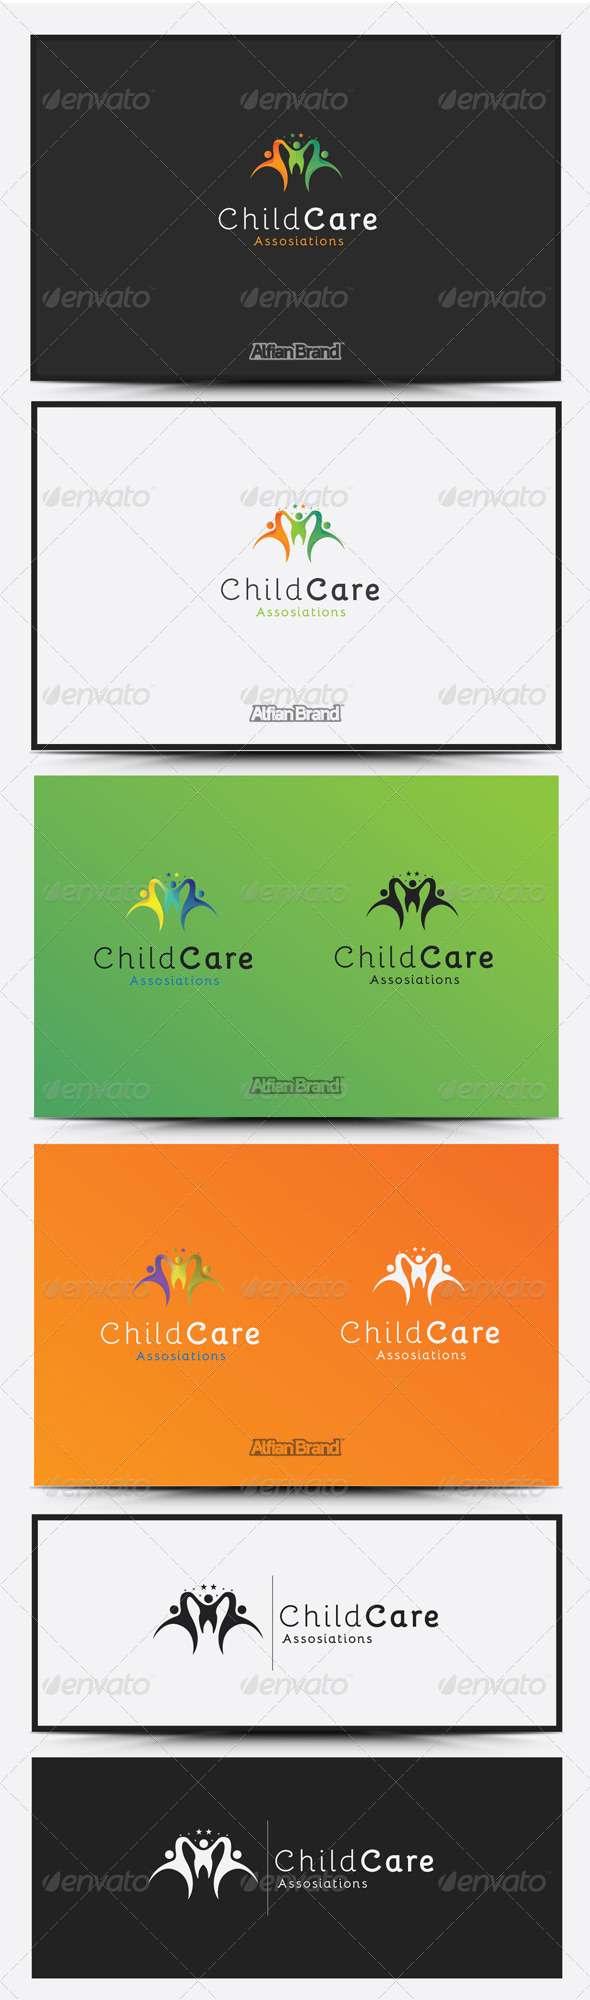 GraphicRiver Child Care Logo 8419013